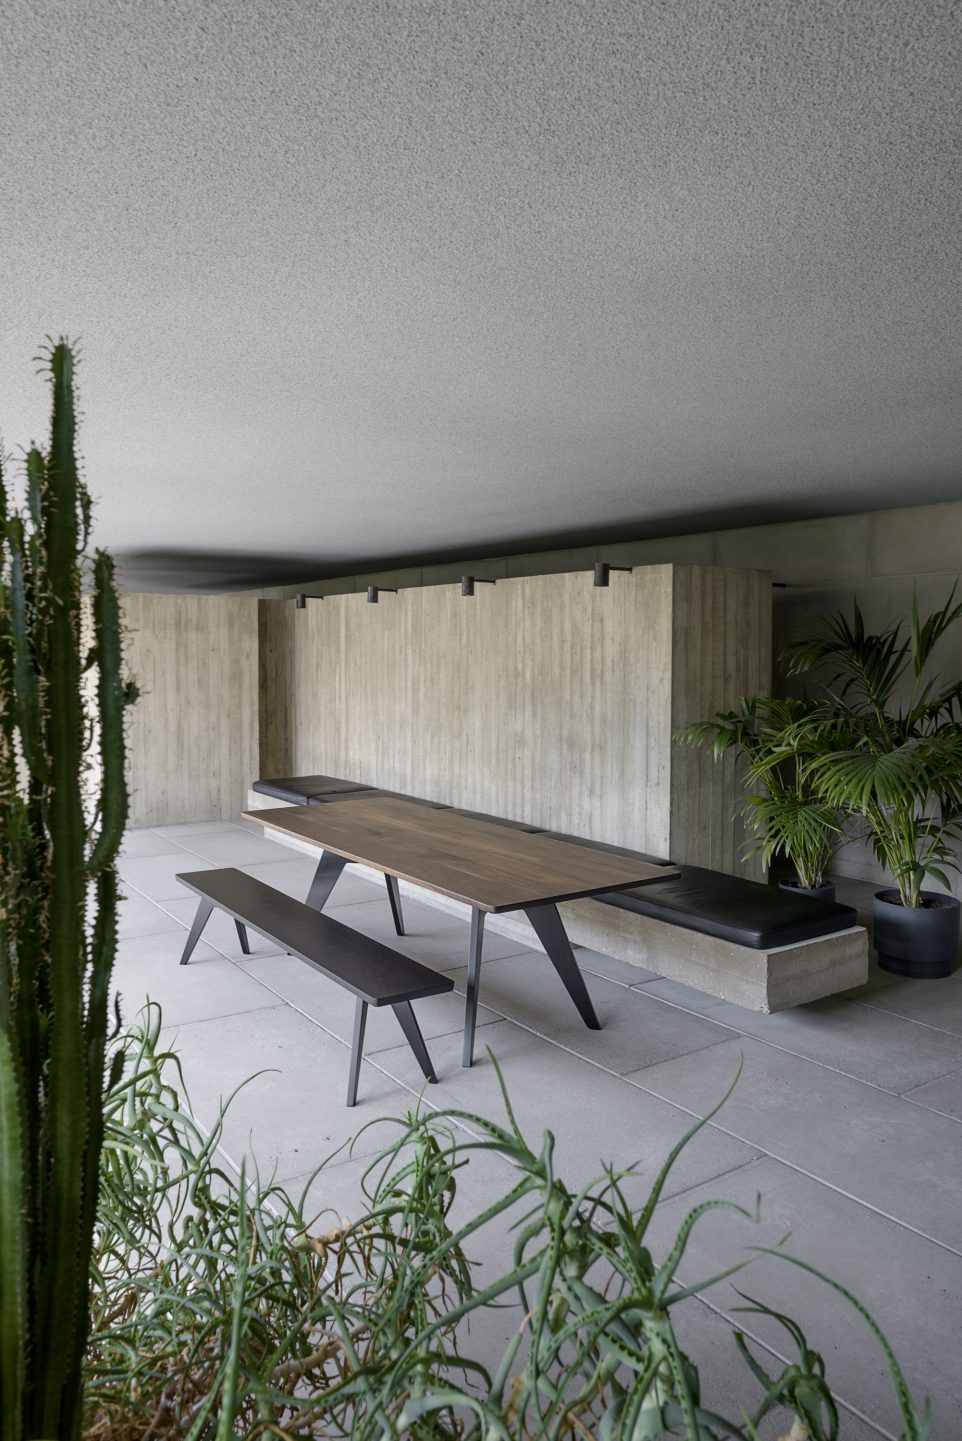 Poiat_Lavitta_table and bench_1